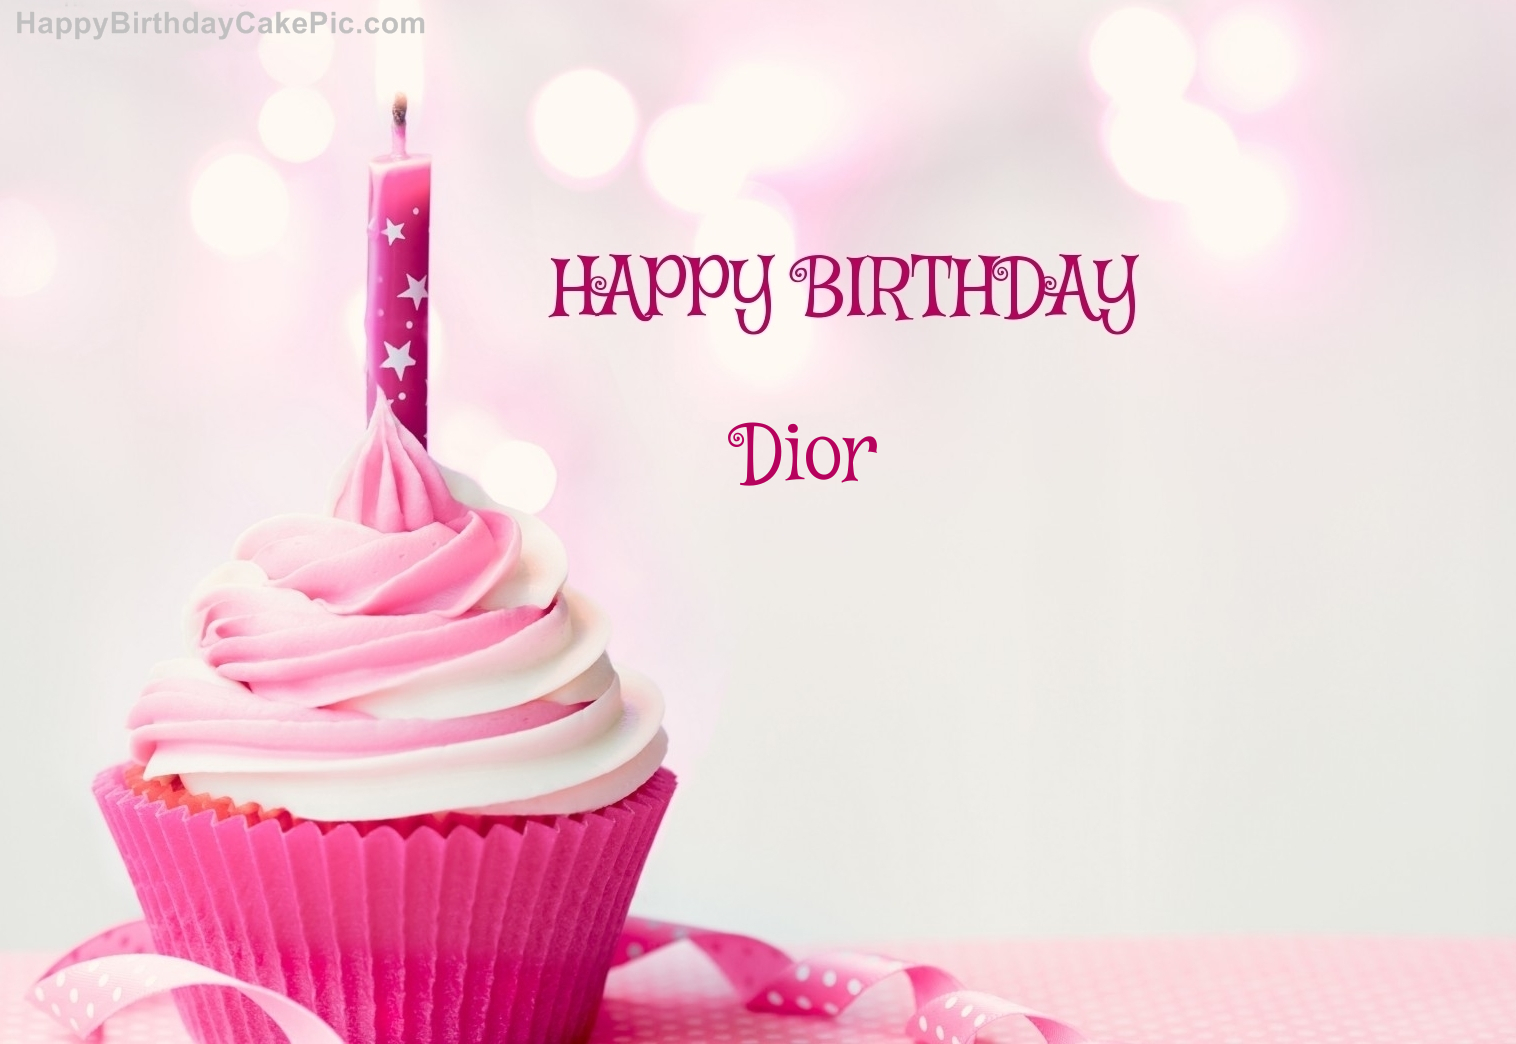 Happy Birthday Cupcake Candle Pink Cake For Dior